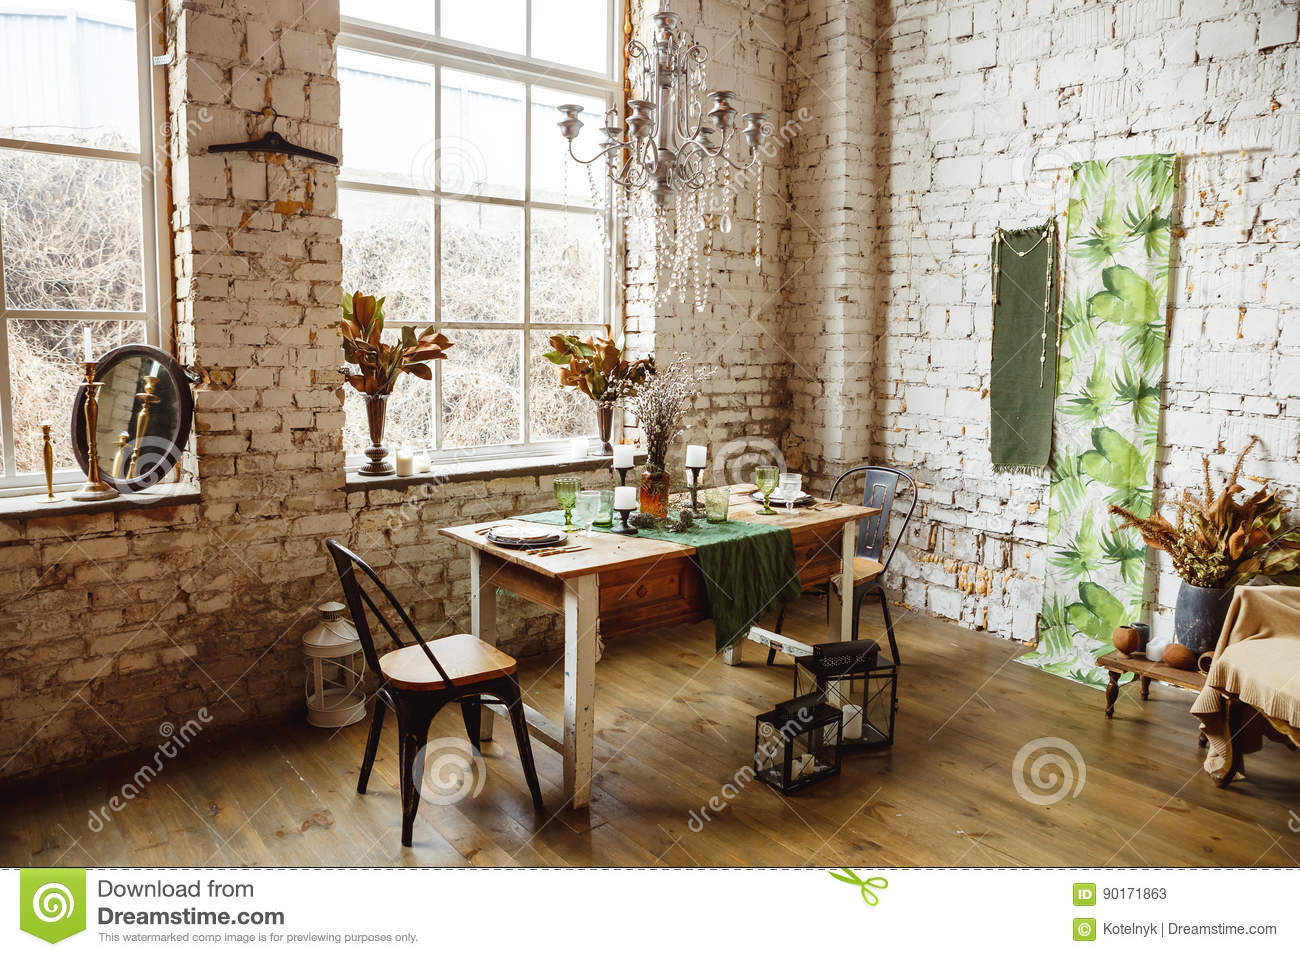 Loft Interior With Brick Wall, Table And Chairs Stock Image - Image ...